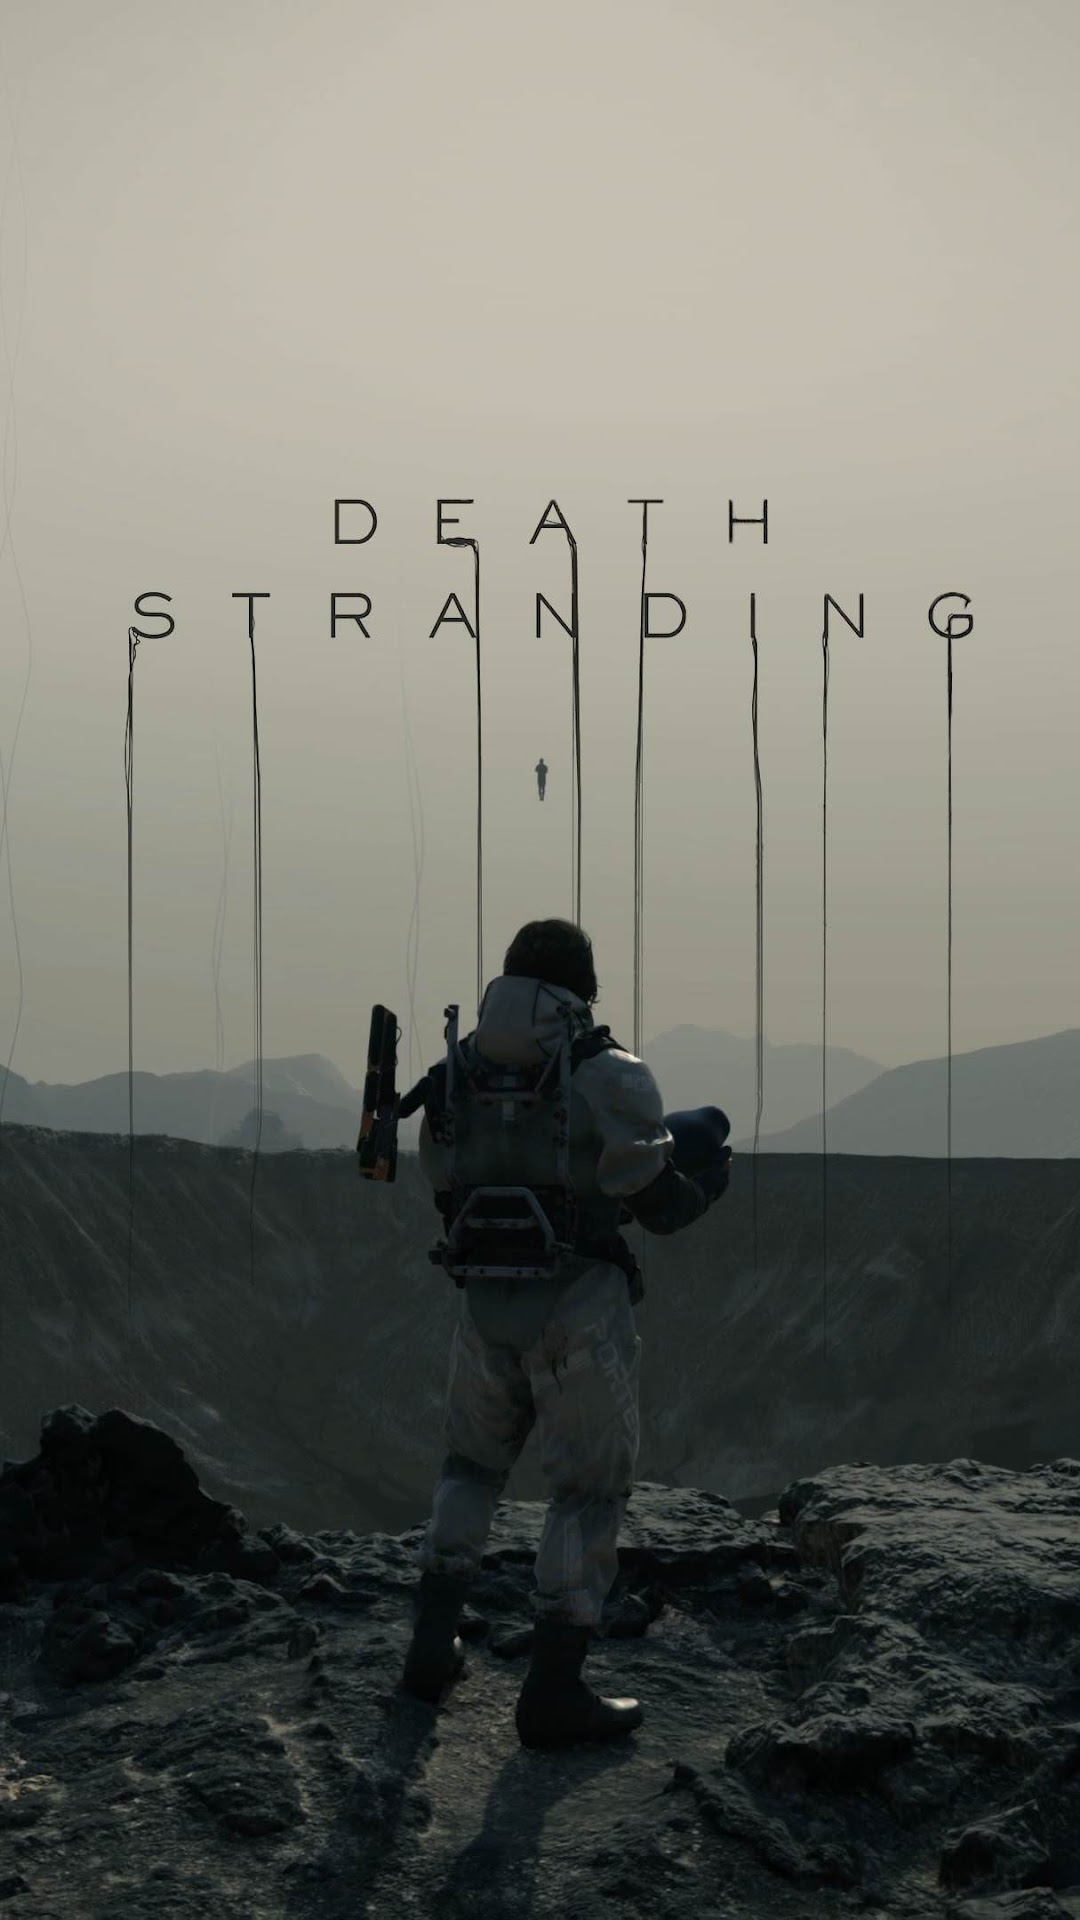 Death Stranding 4k Wallpaper 9